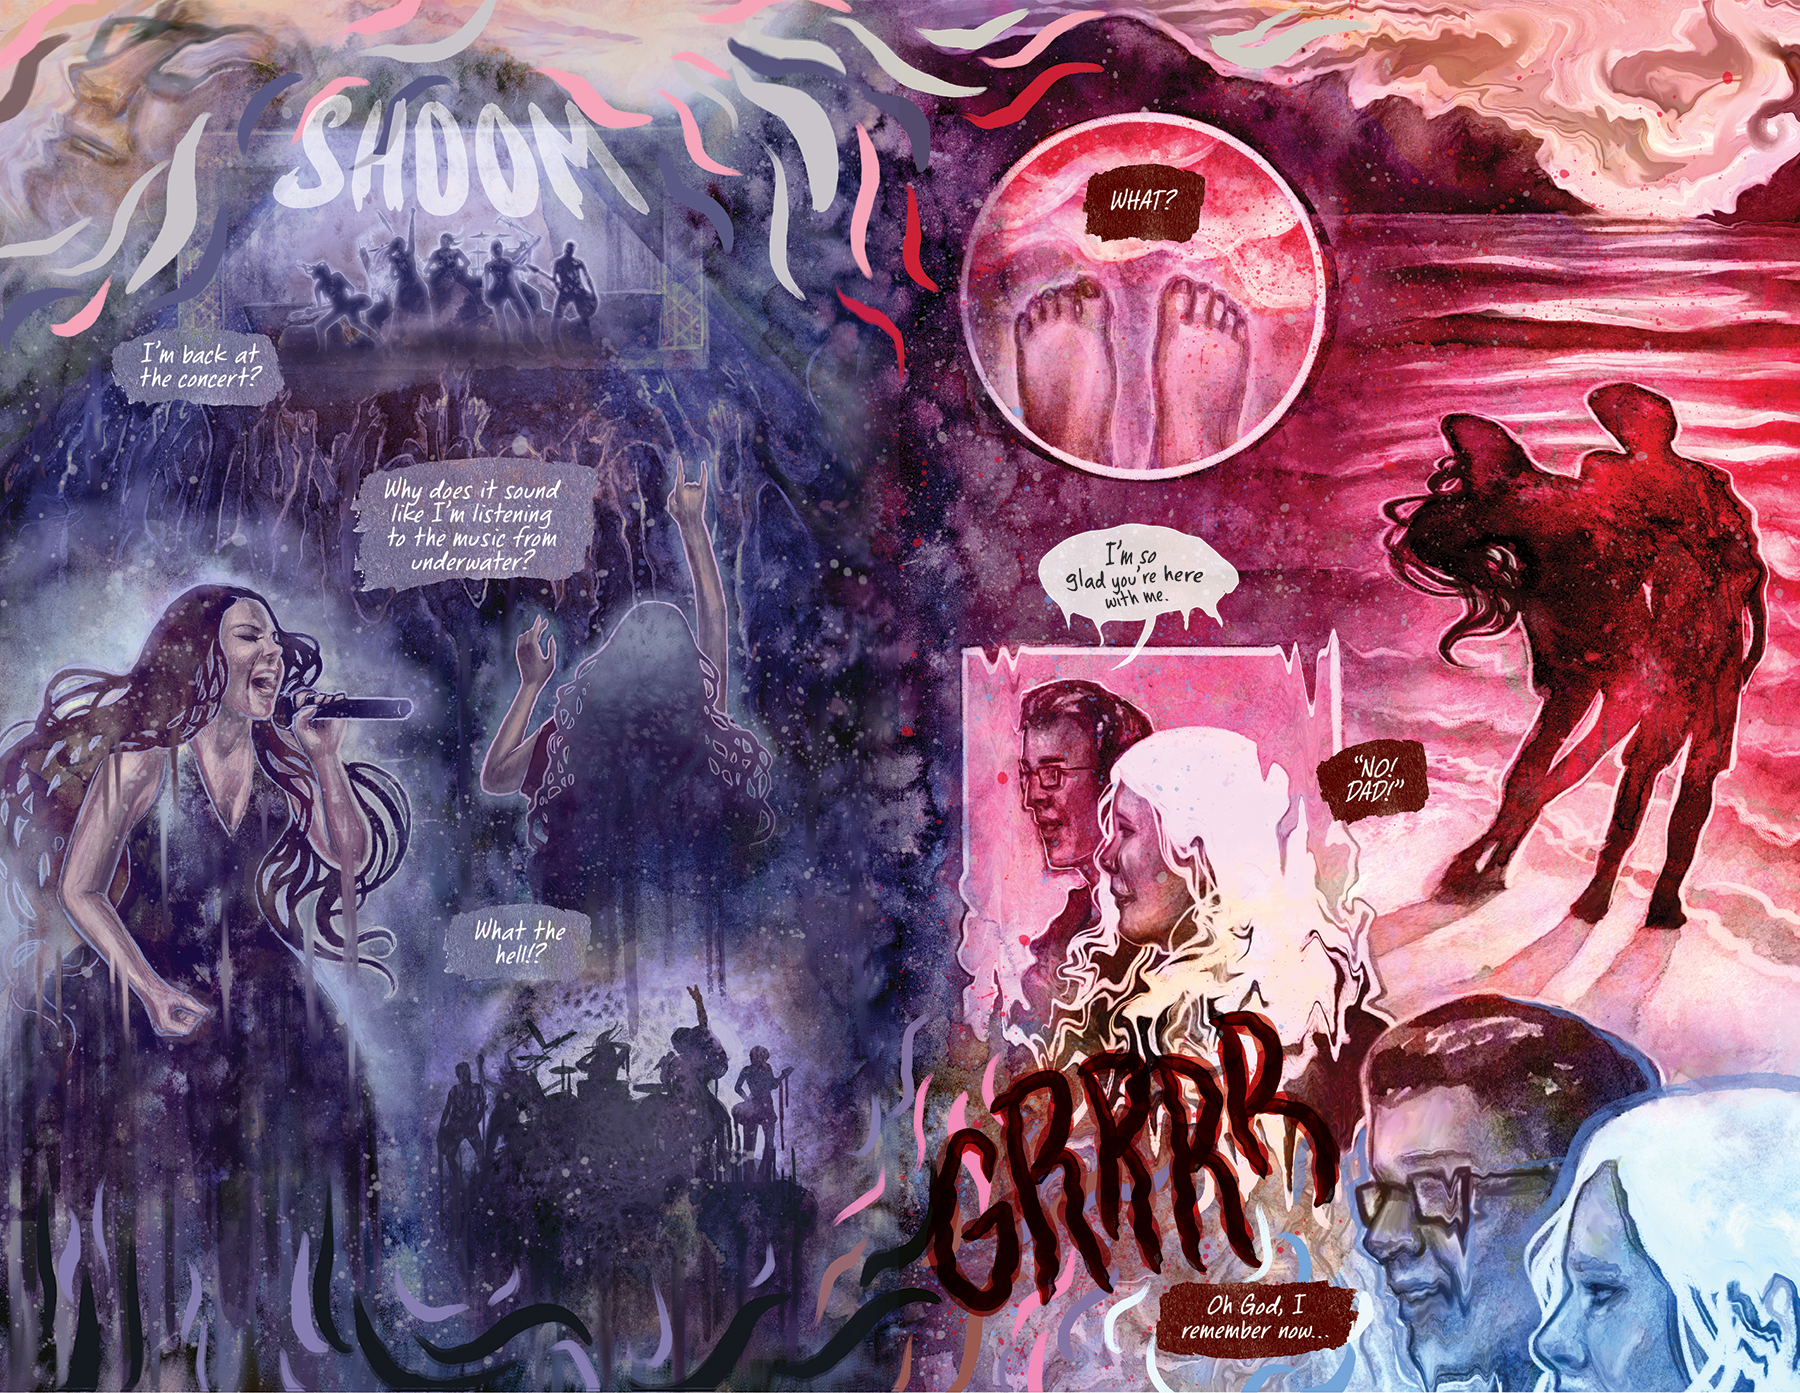 evanescence better without you graphic novel